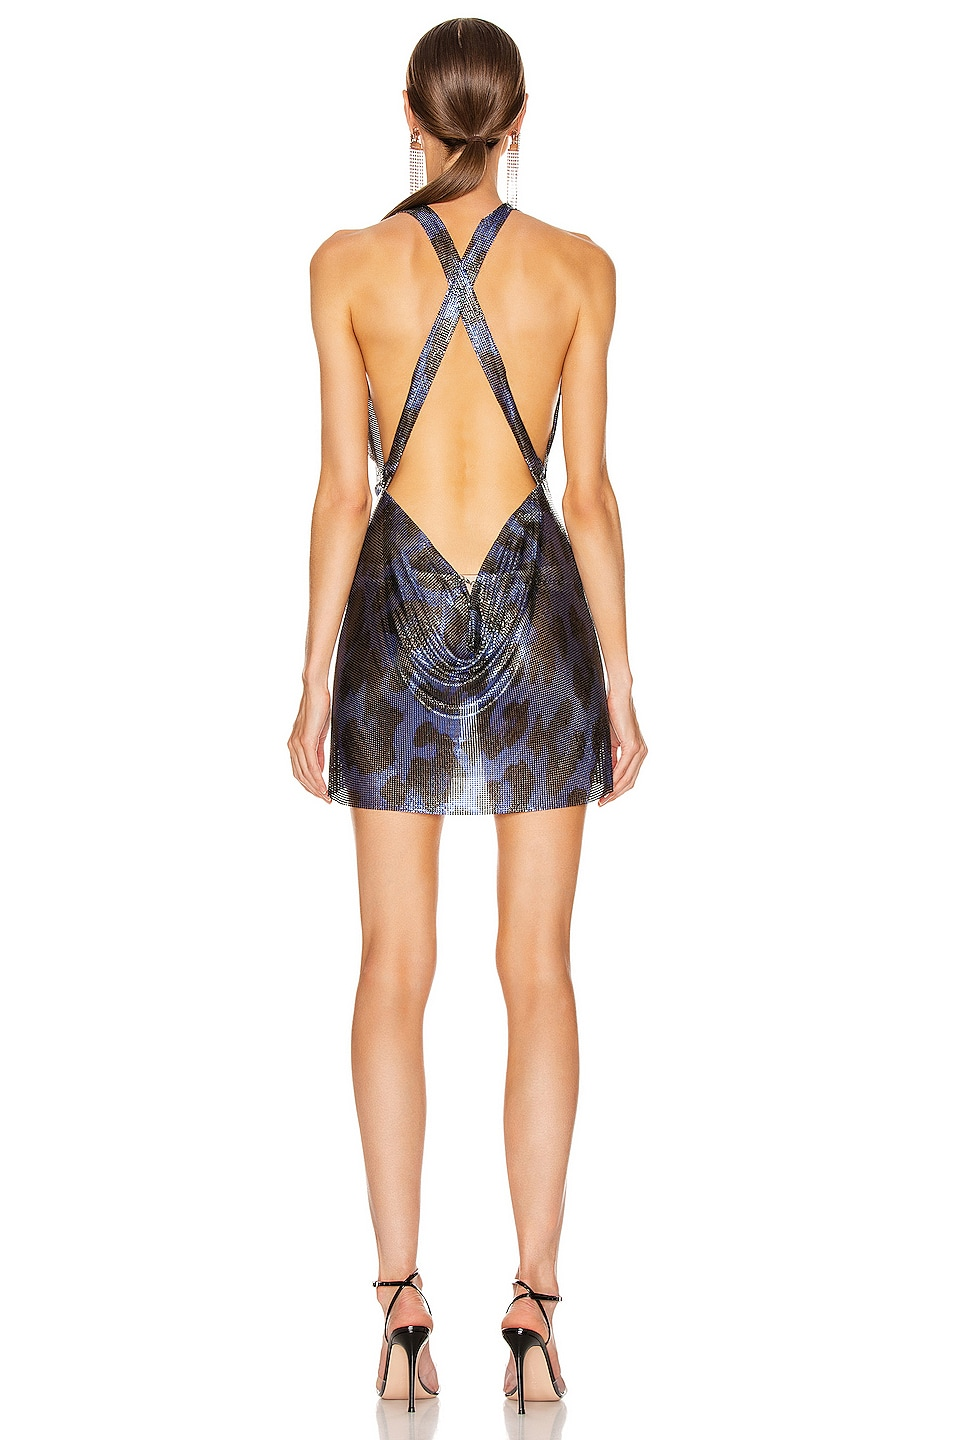 Image 3 of FANNIE SCHIAVONI for FWRD Hailey Metal Mesh Dress in Blue Leopard